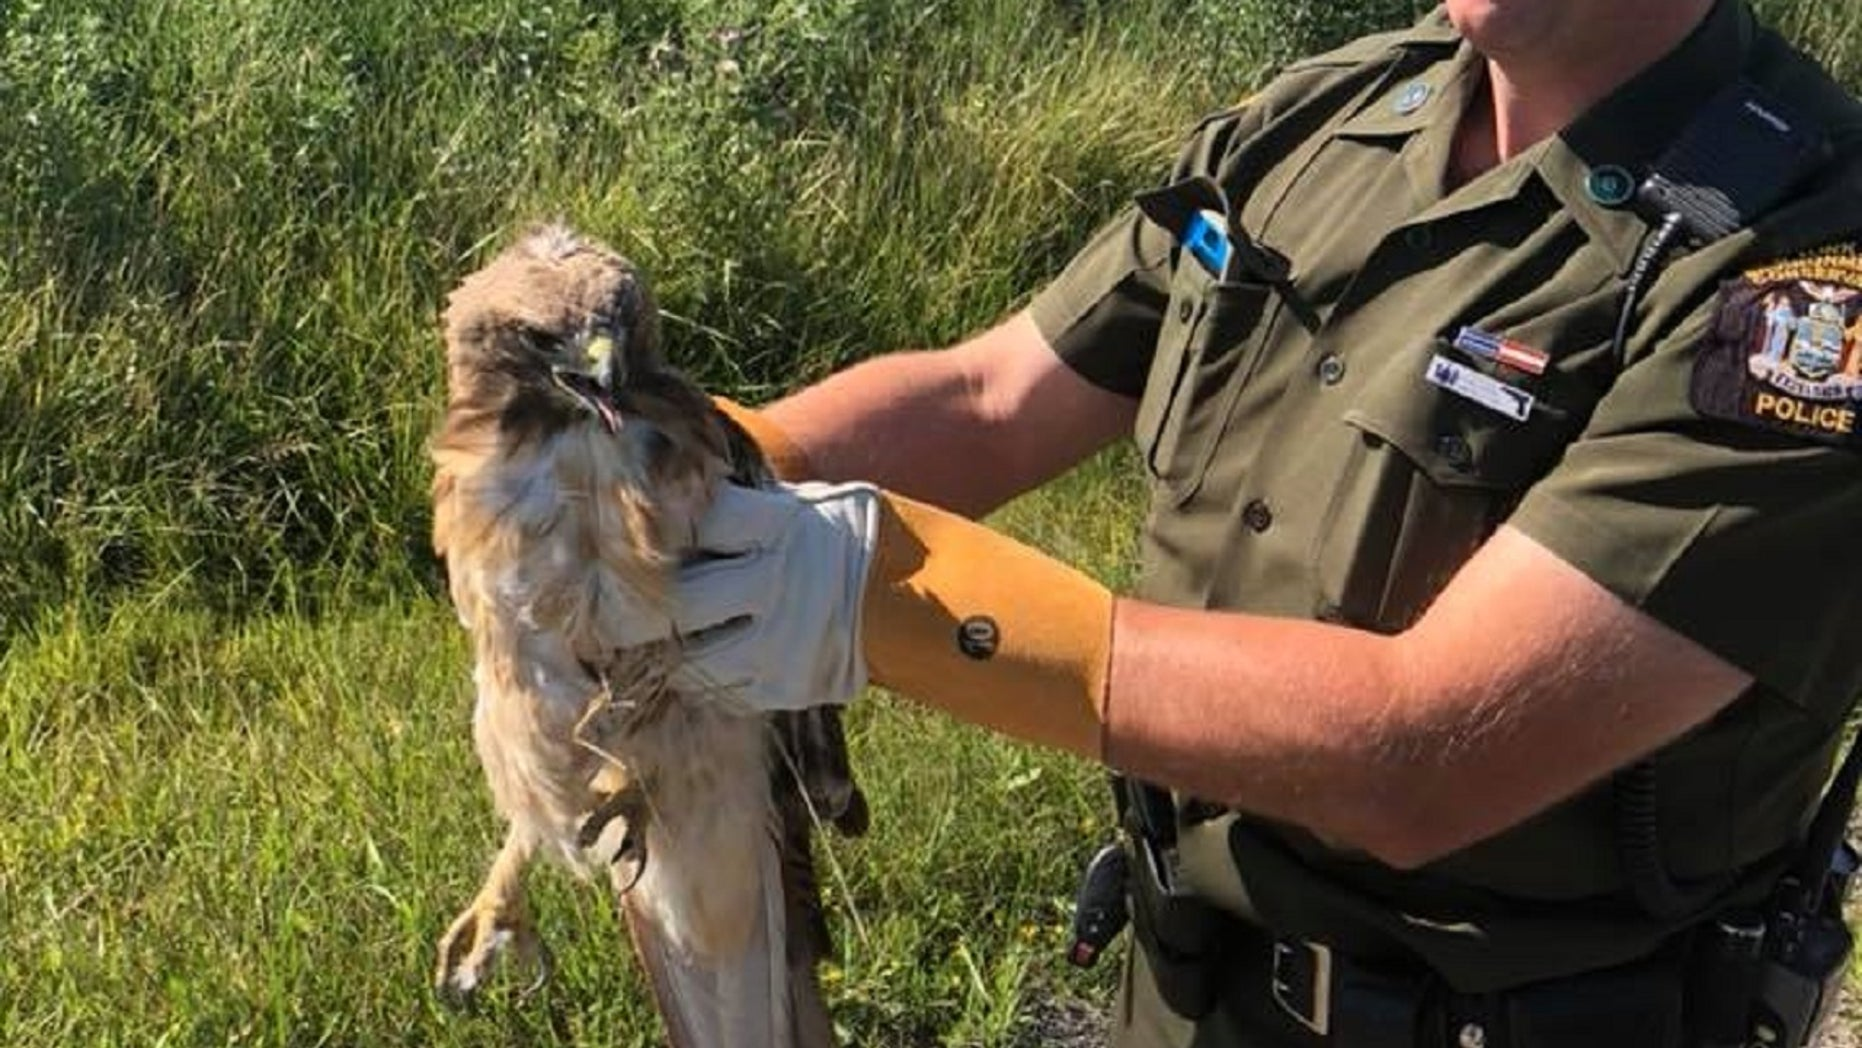 A red-tailed hawk was saved in upstate New York last week, authorities there say.